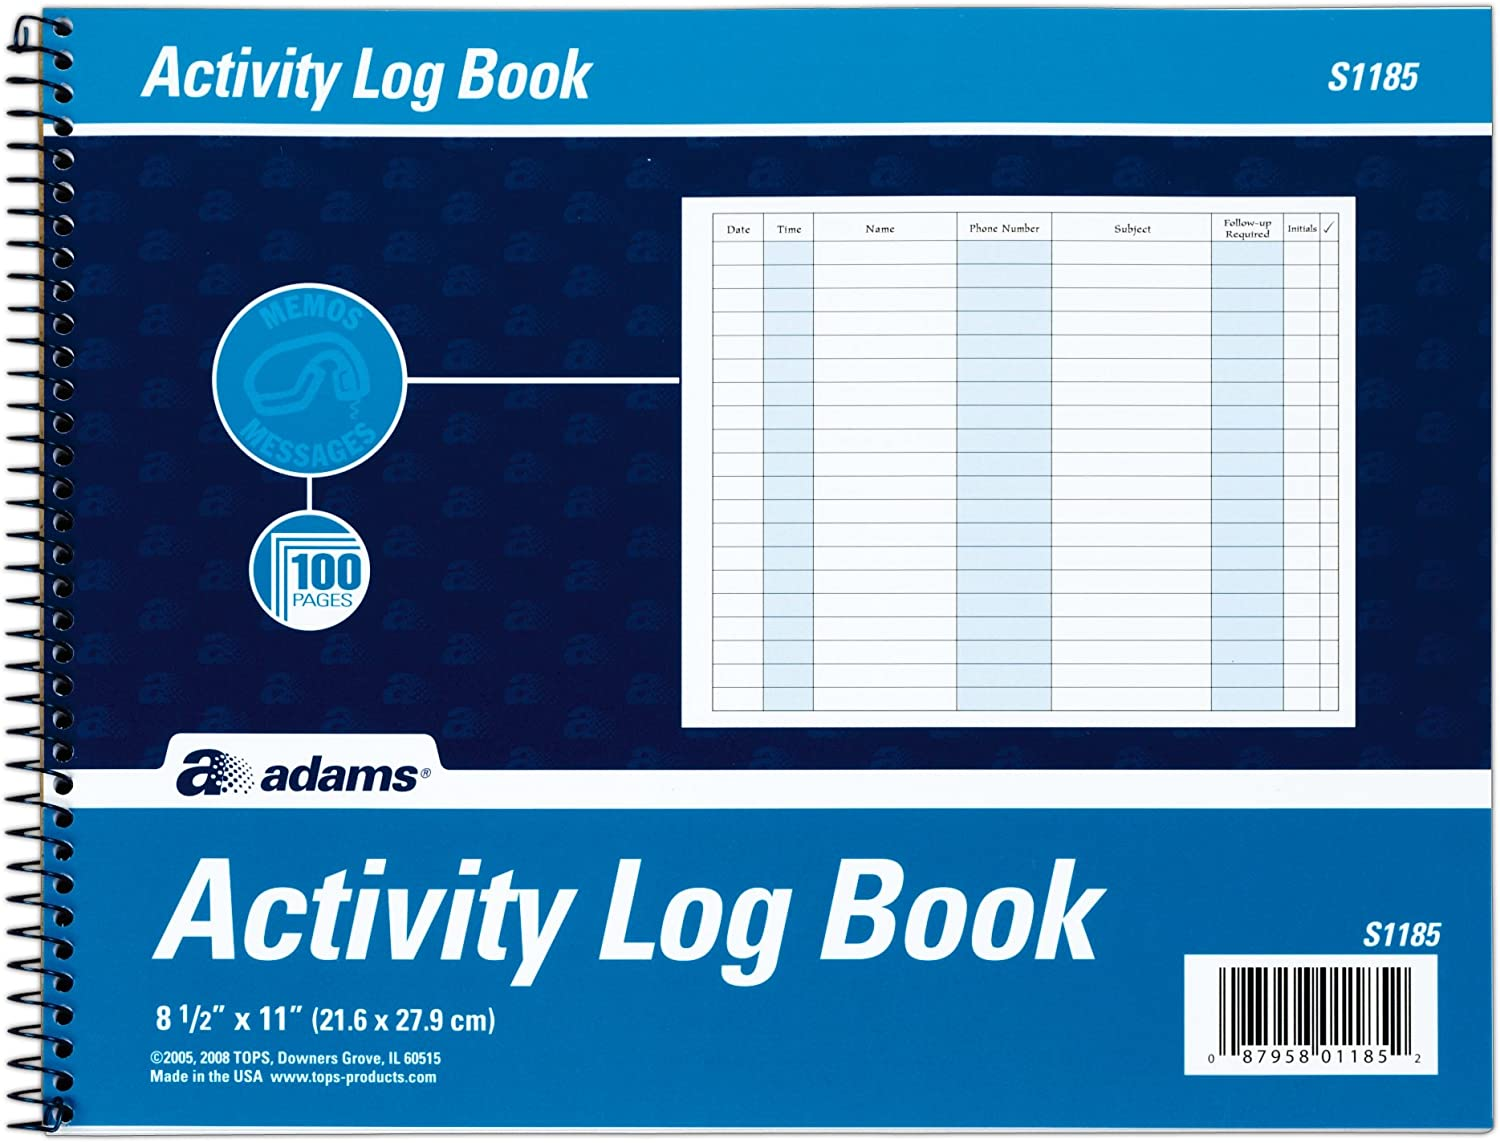 Adams Activity Log Book, Spiral Bound, 8.5 x 11 Inches, 100 Pages, White (S1185ABF) (Тwo Рack, White)